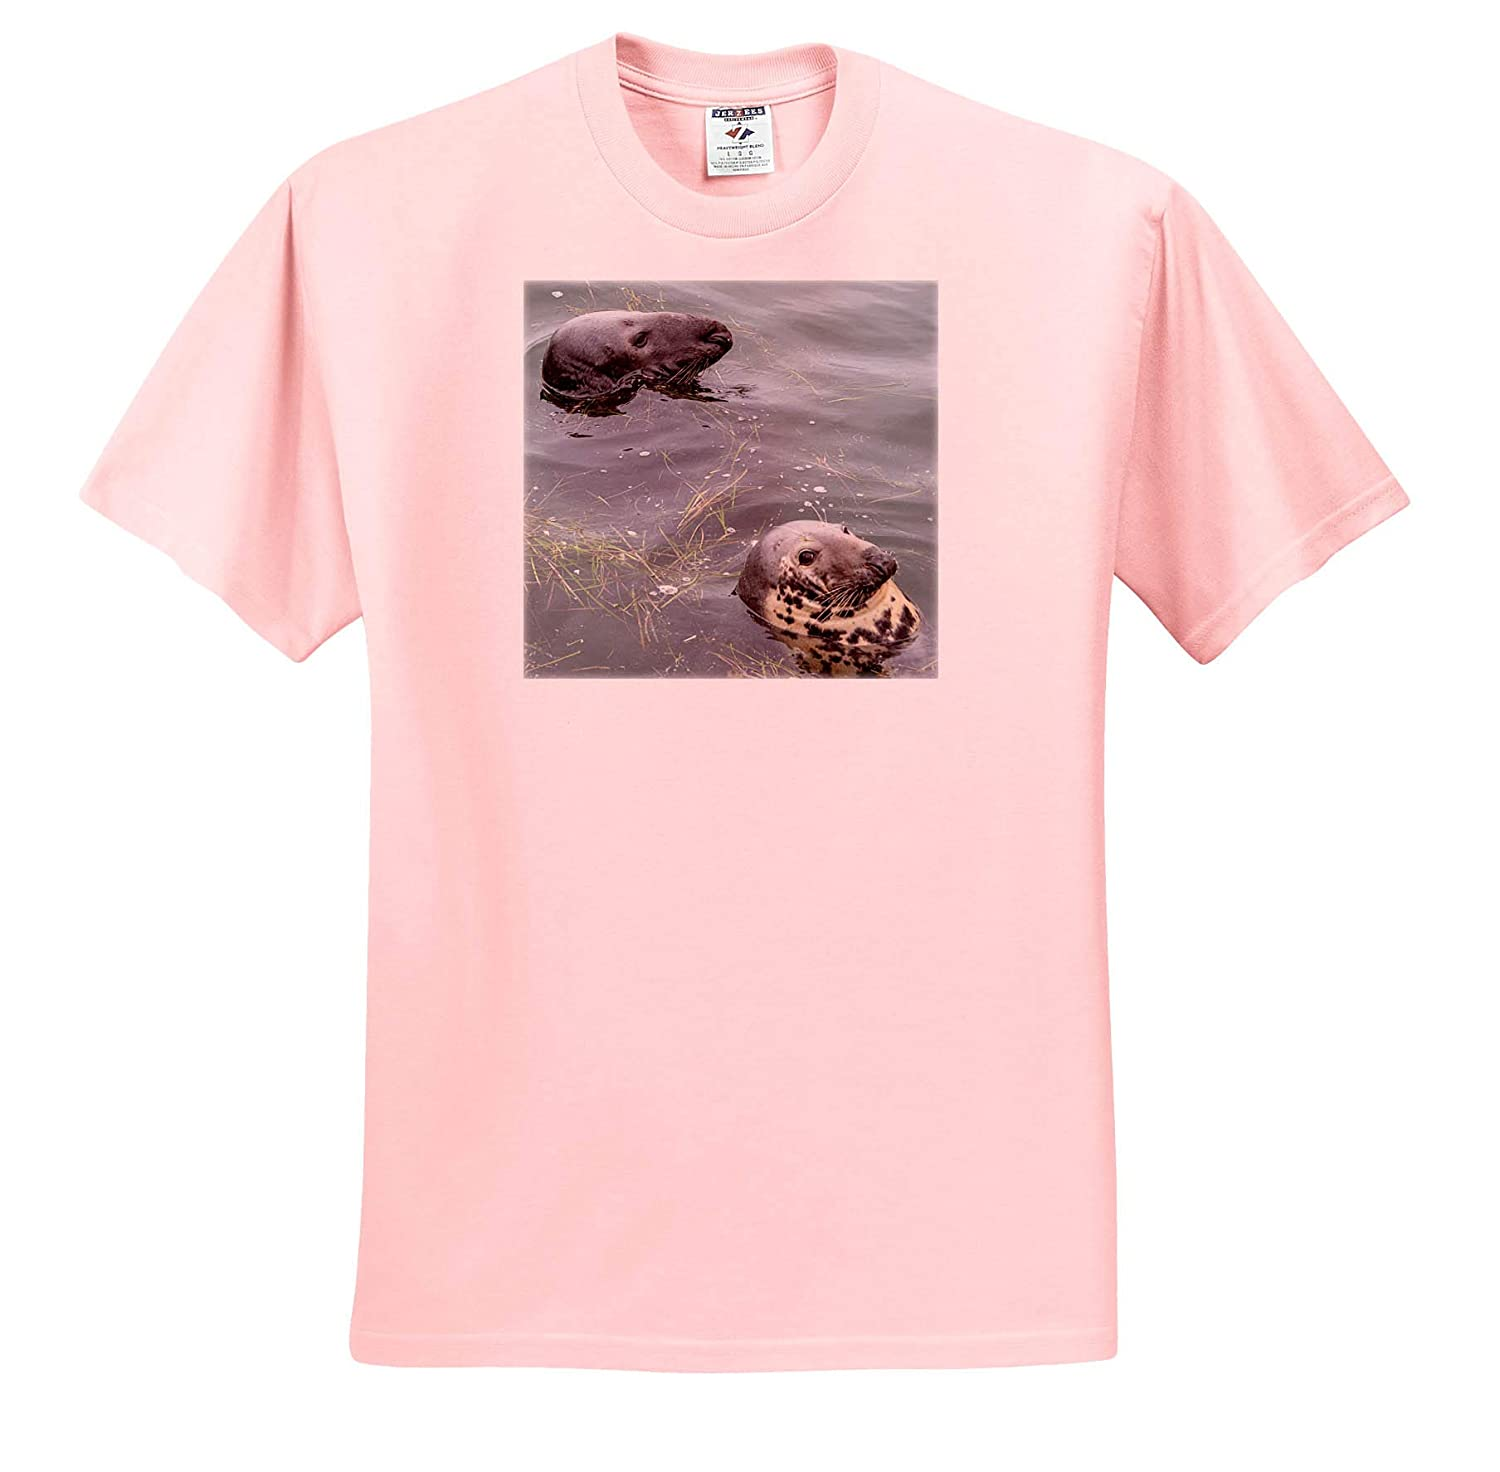 3dRose Roni Chastain Photography T-Shirts Harbor Seal and Gray Seal